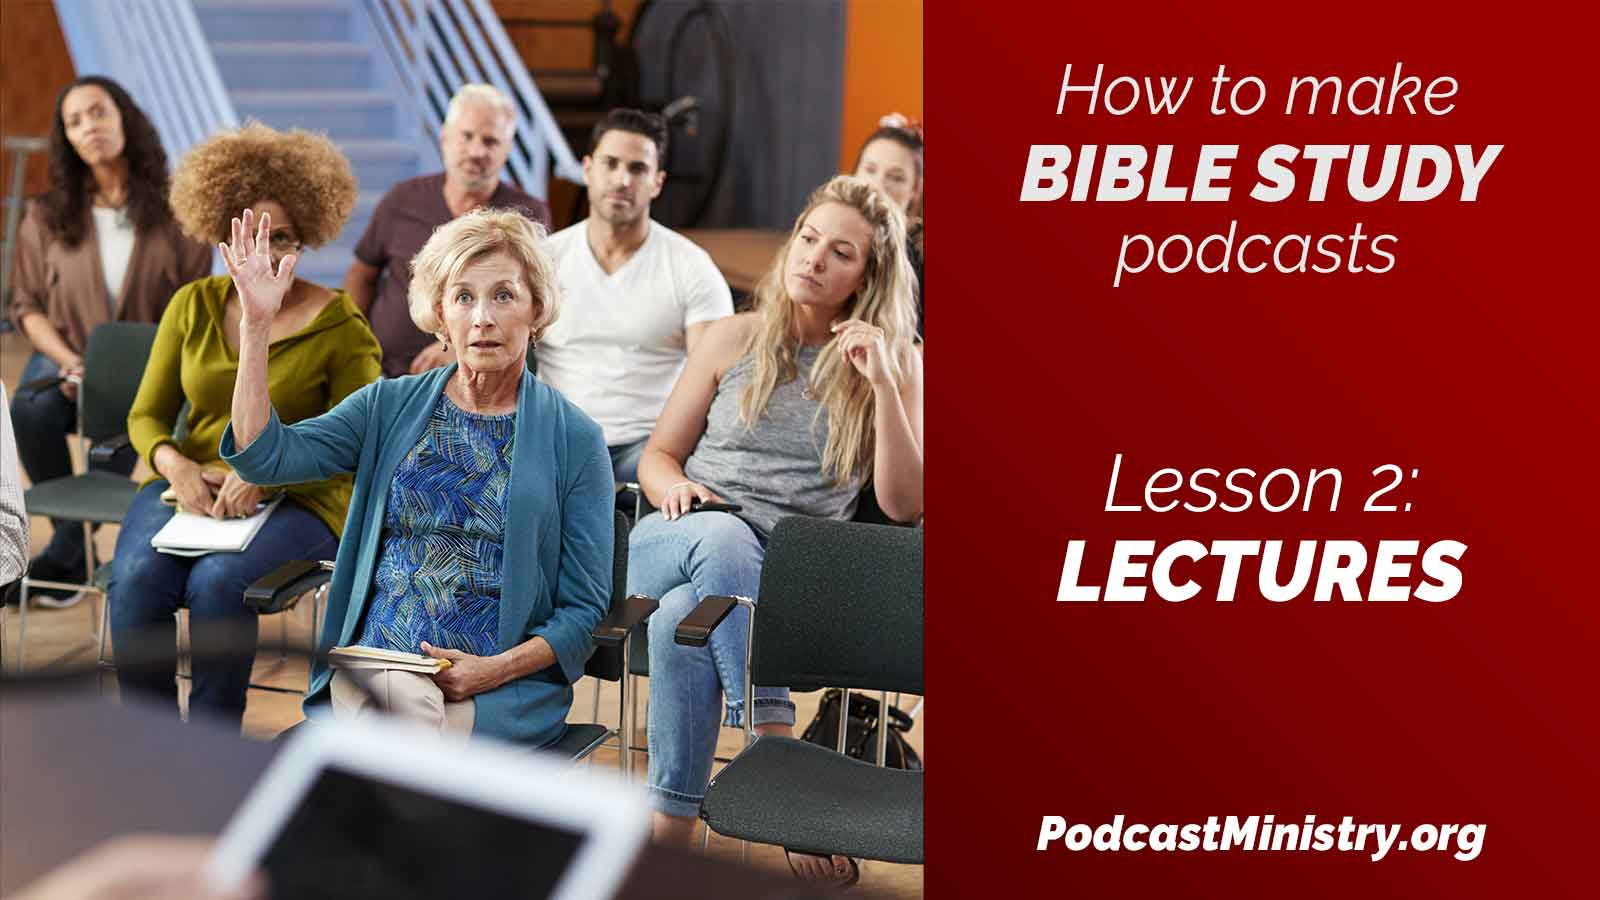 Lesson 2: How to make a Bible study podcast of the lecture style Bible studies in your church.